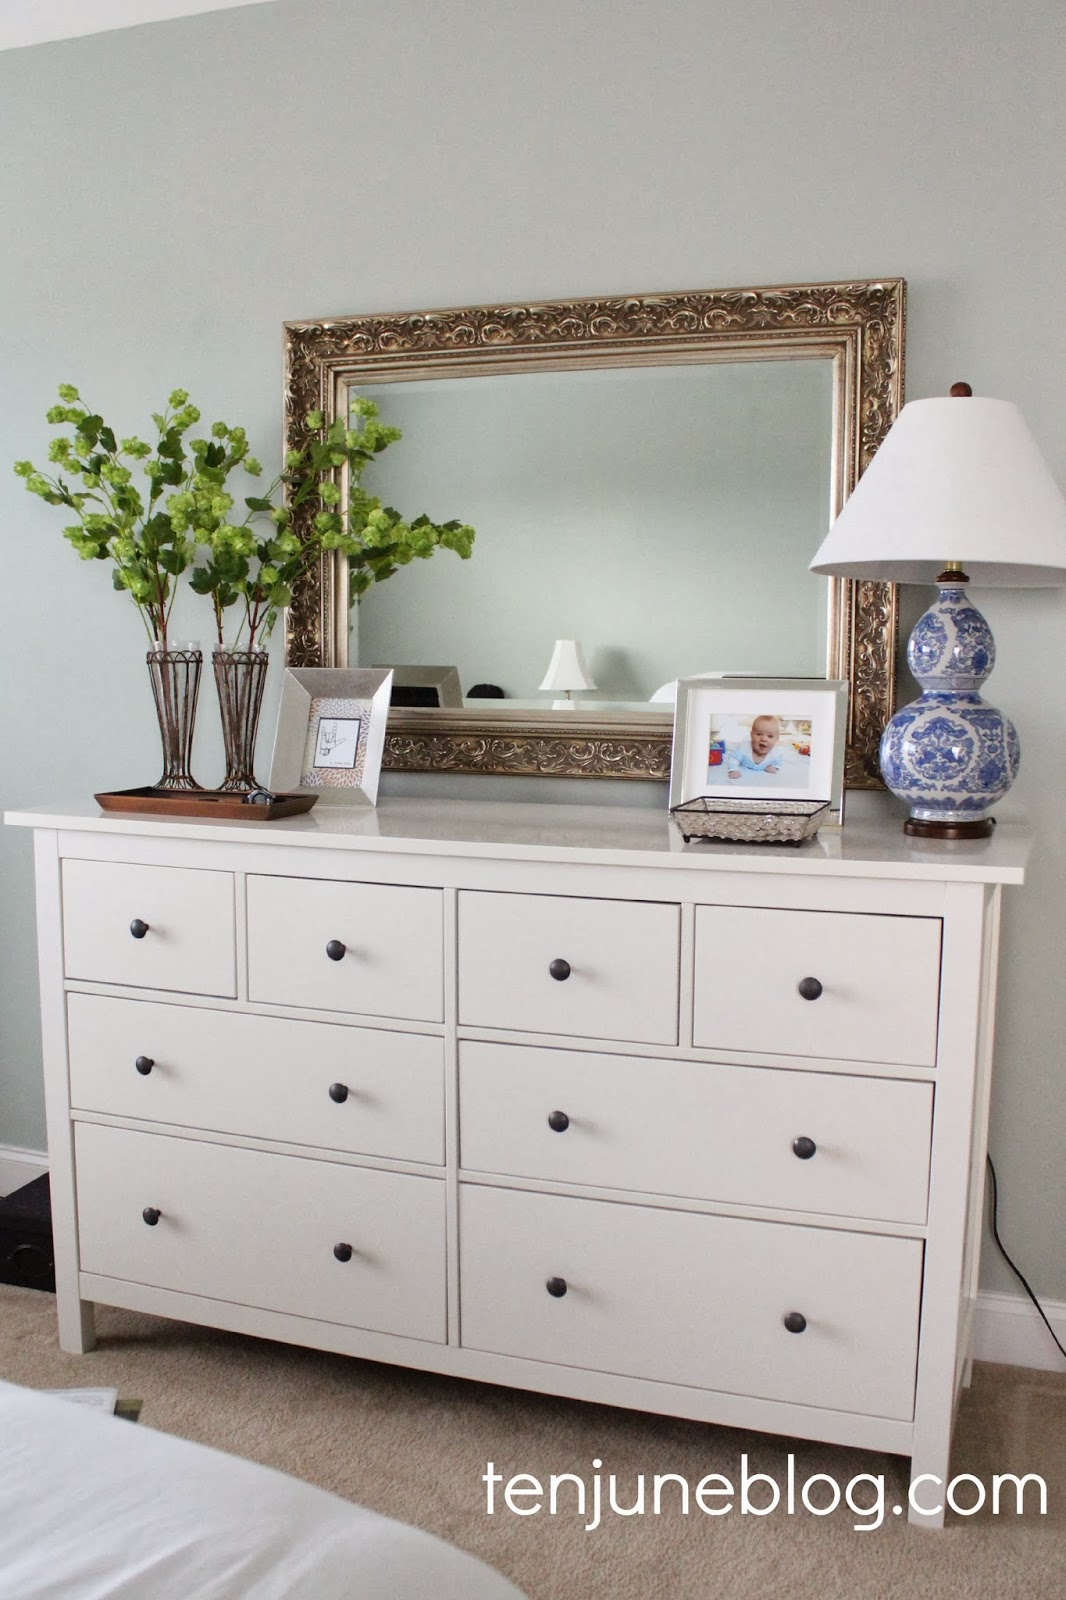 Ten june master bedroom dresser vignette for Master bedroom dresser ideas